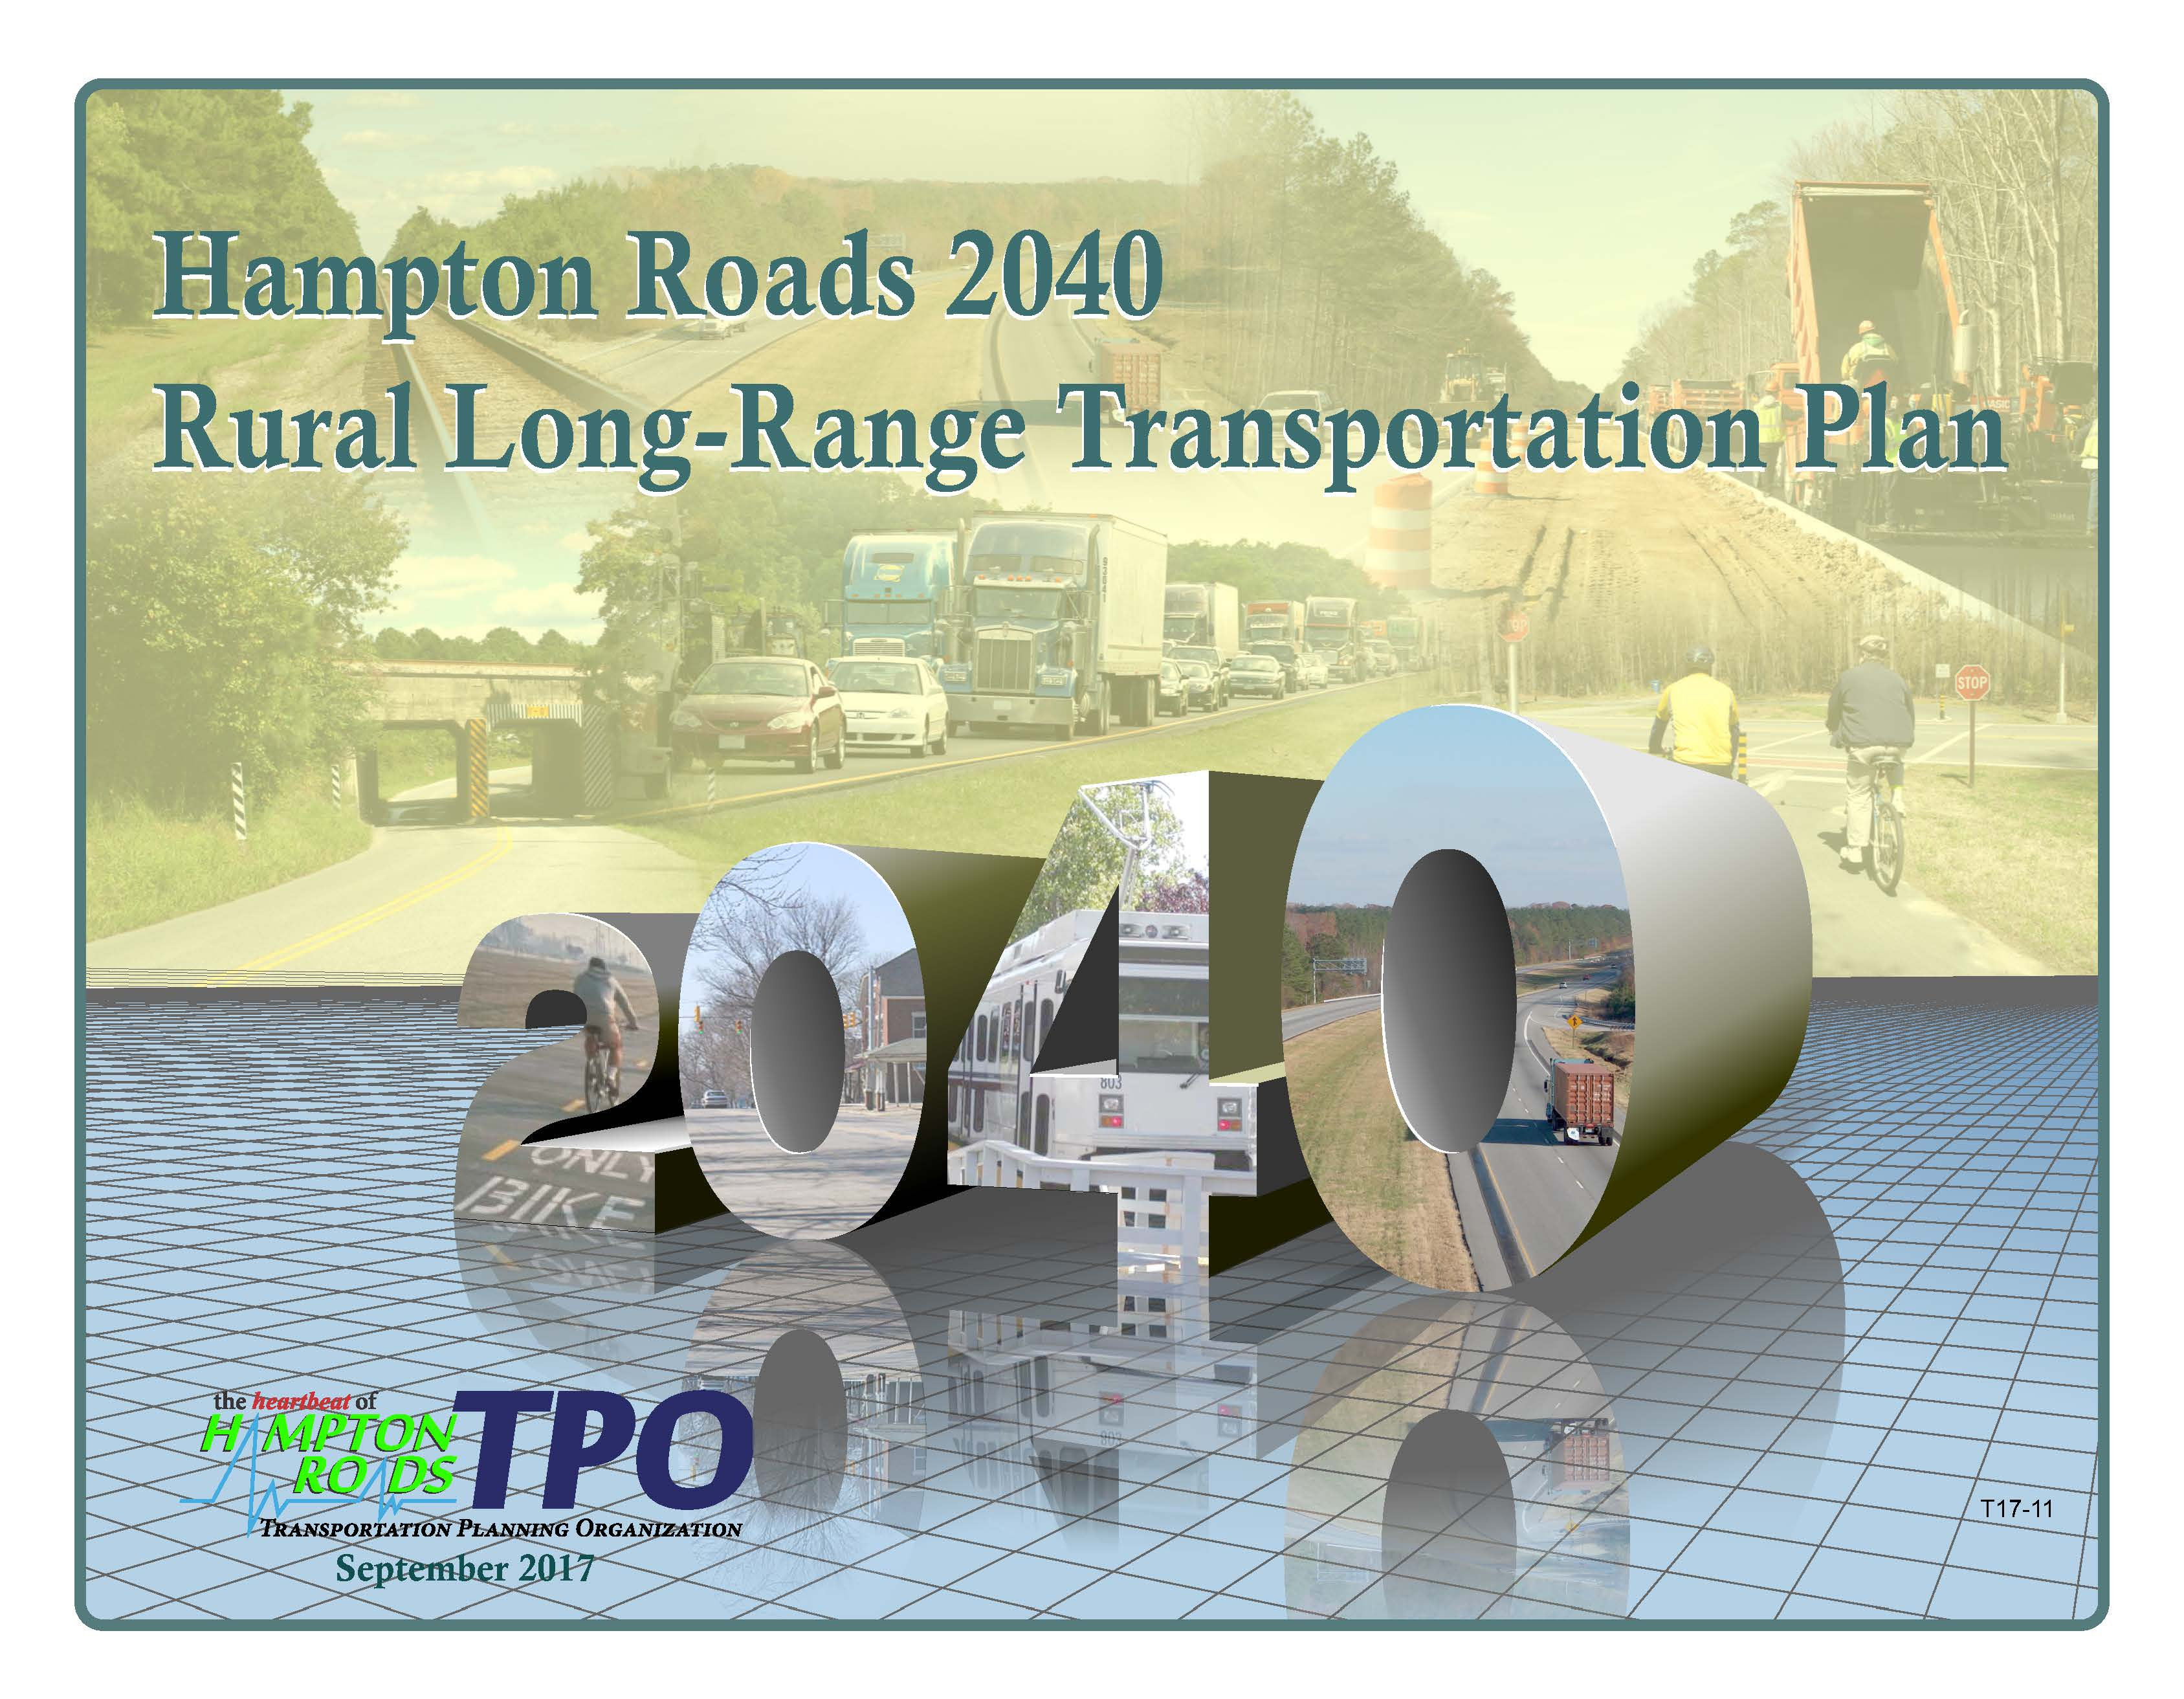 HRTPO 2035 Rural Long Range Transportation Plan